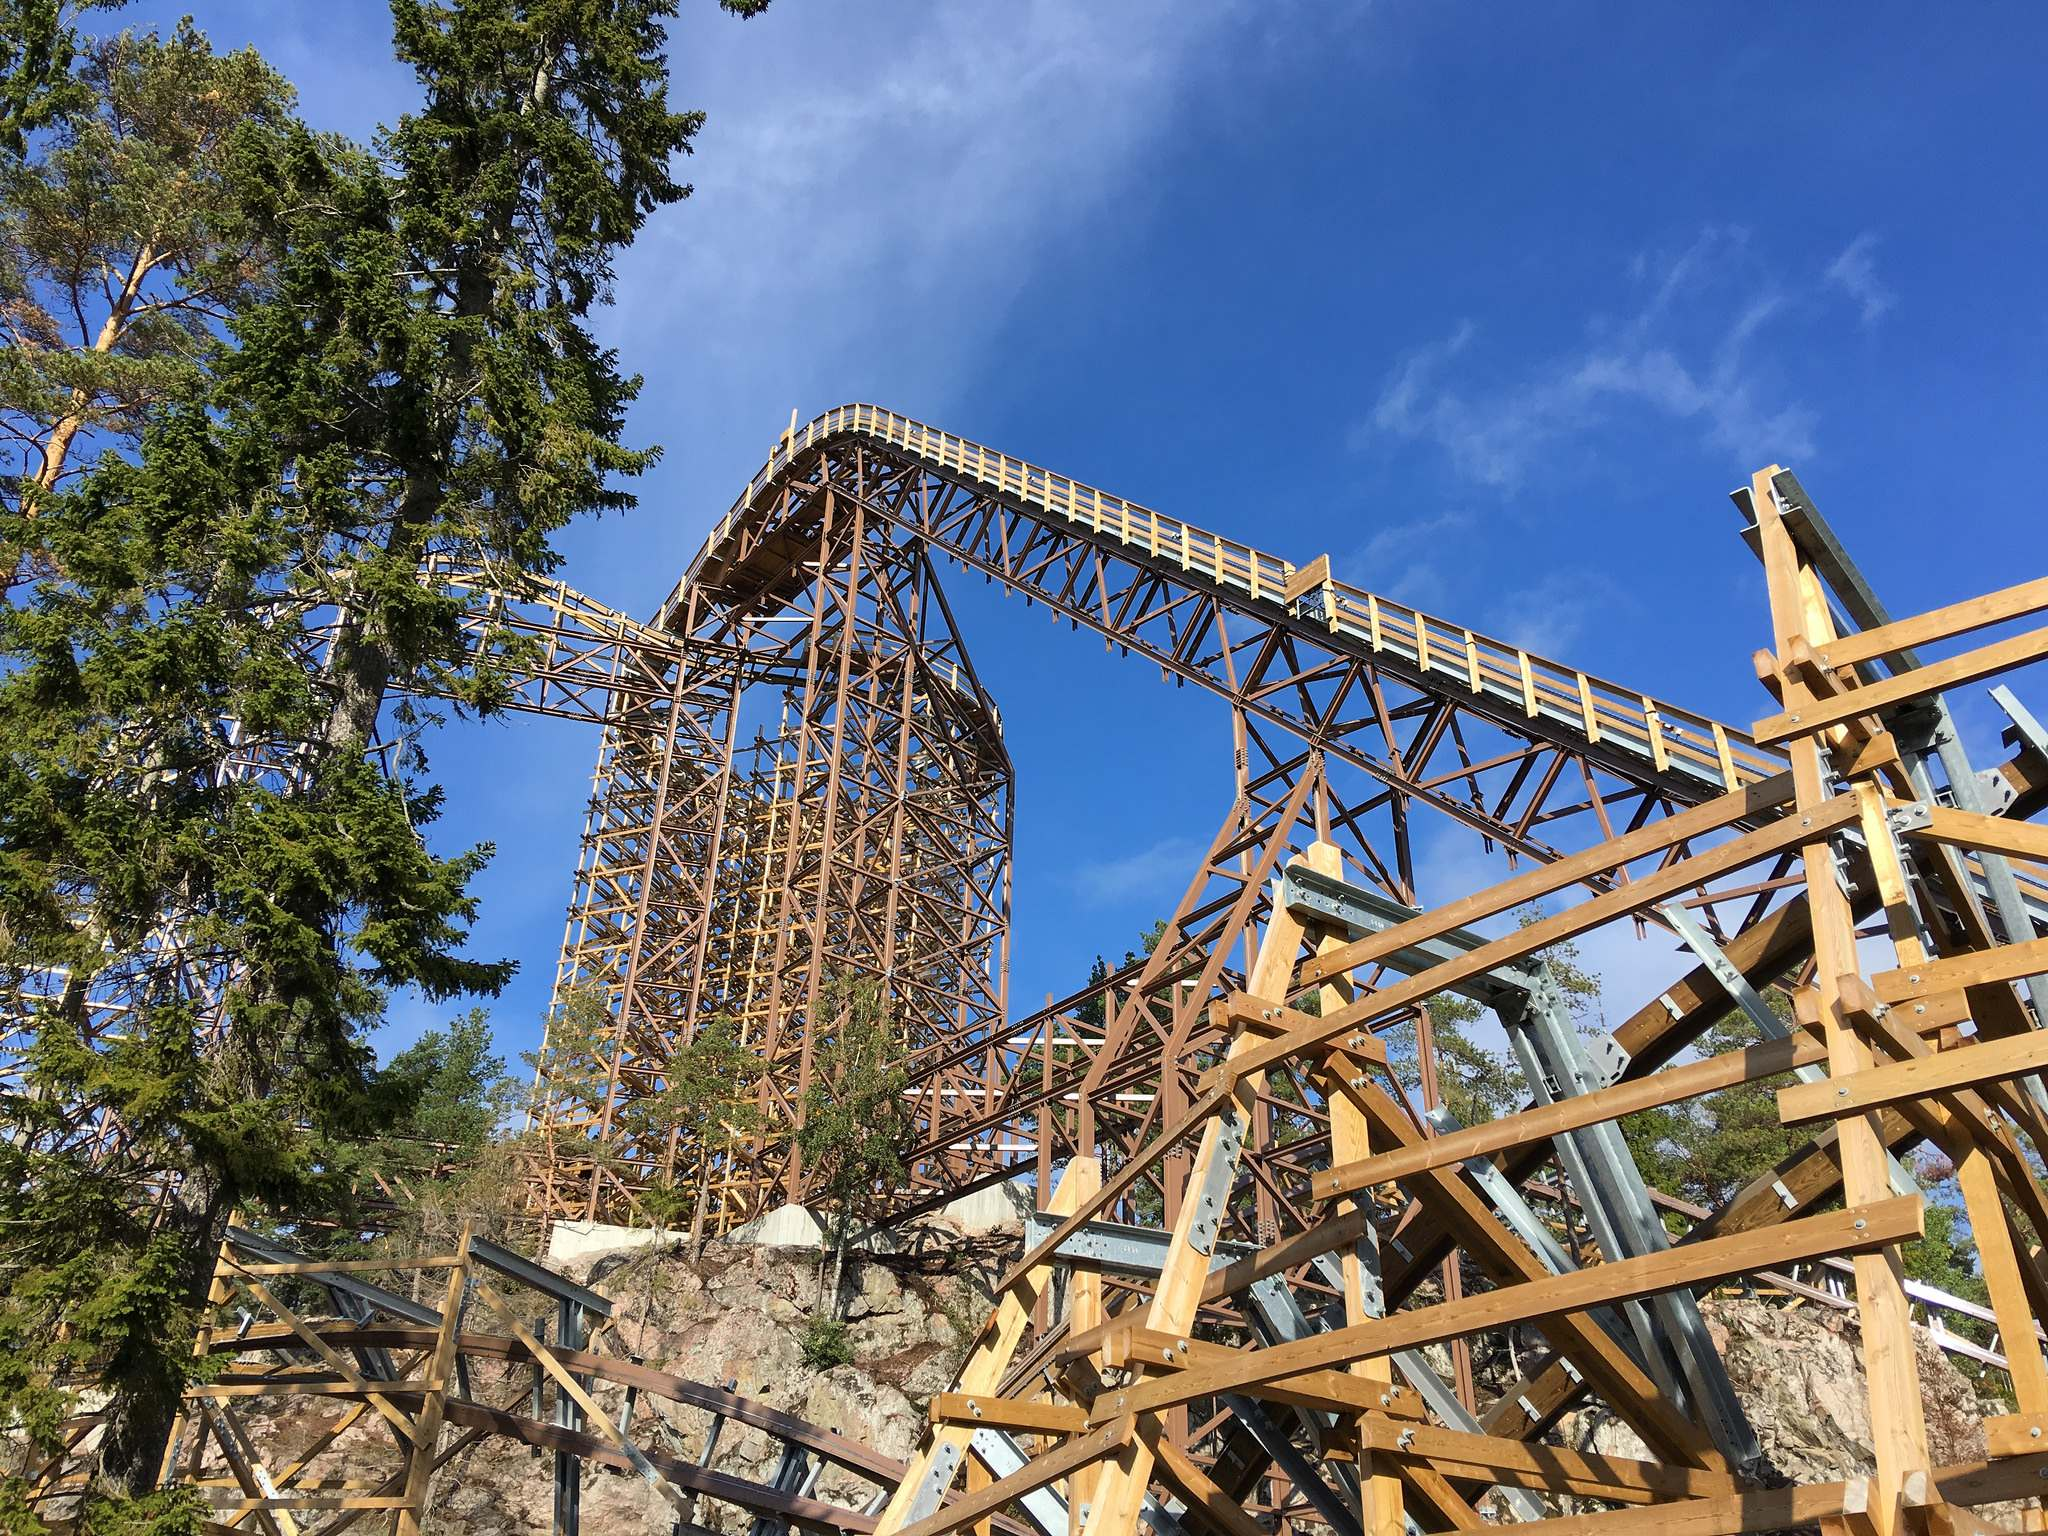 wildfire Wildfire   Fastest Wooden Coaster in Europe